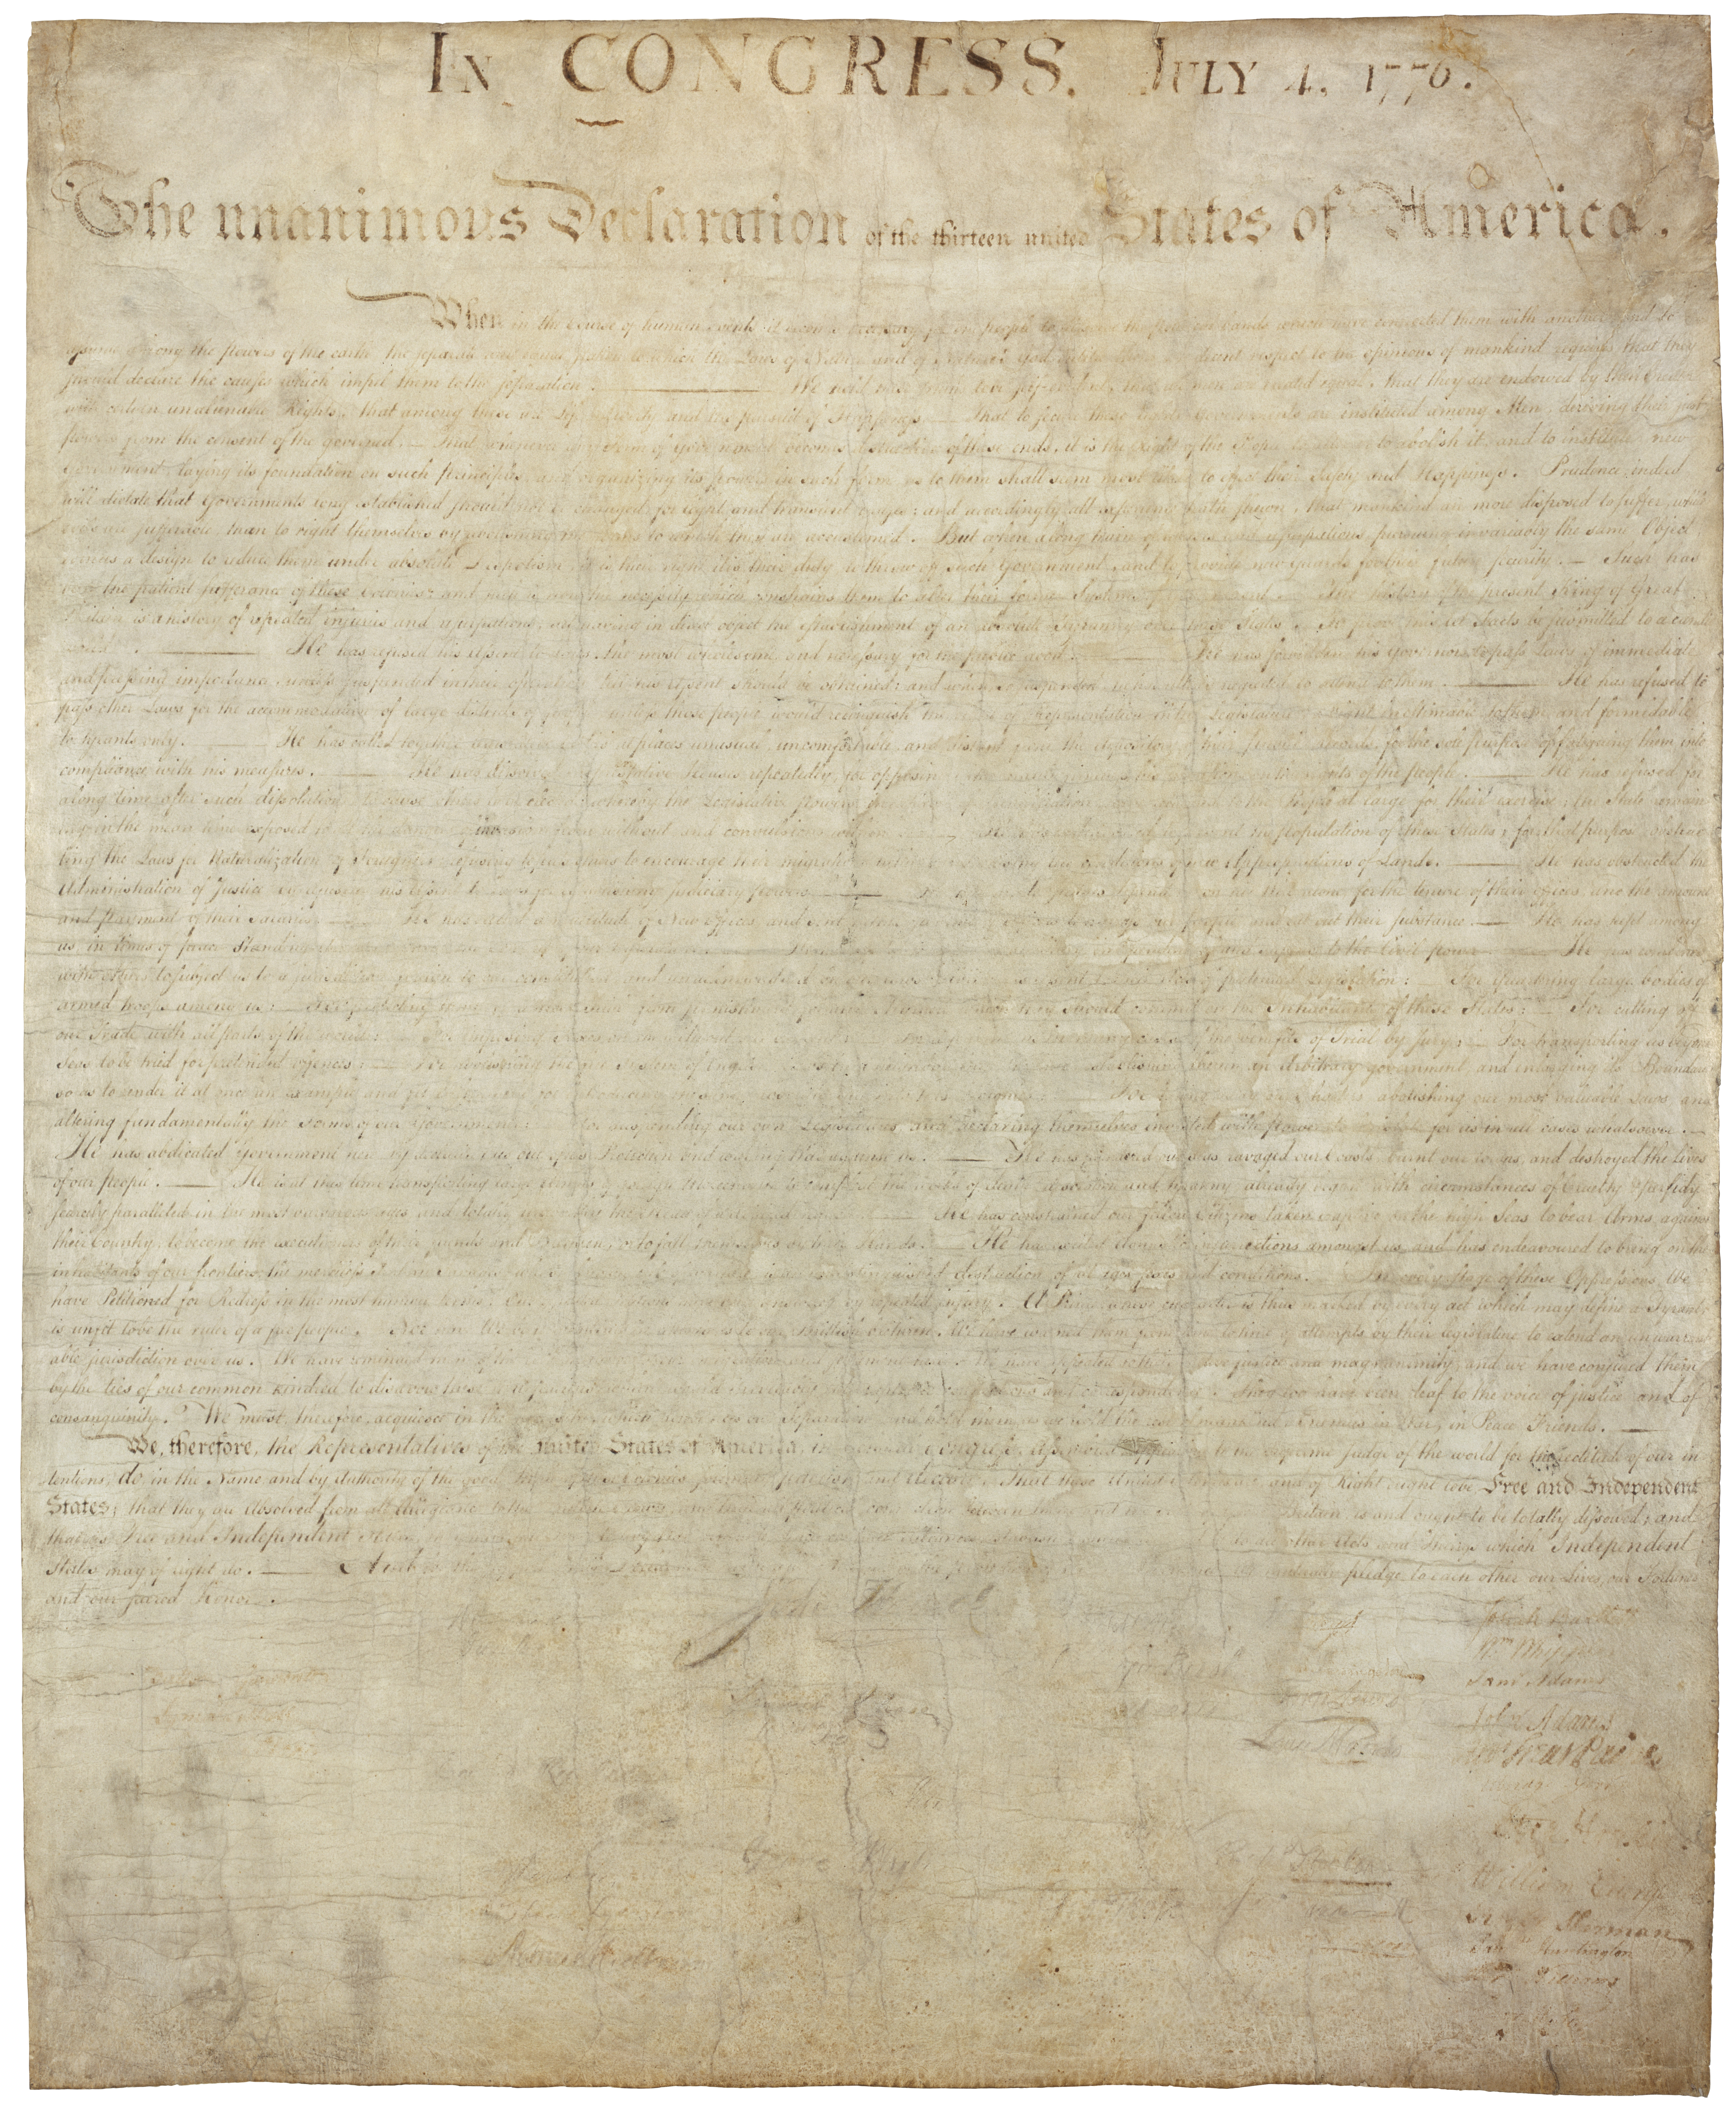 The signed copy of the Declaration is now badly faded because of poor preserving practices in the 19th century. It is on display at the National Archives in Washington, D.C.